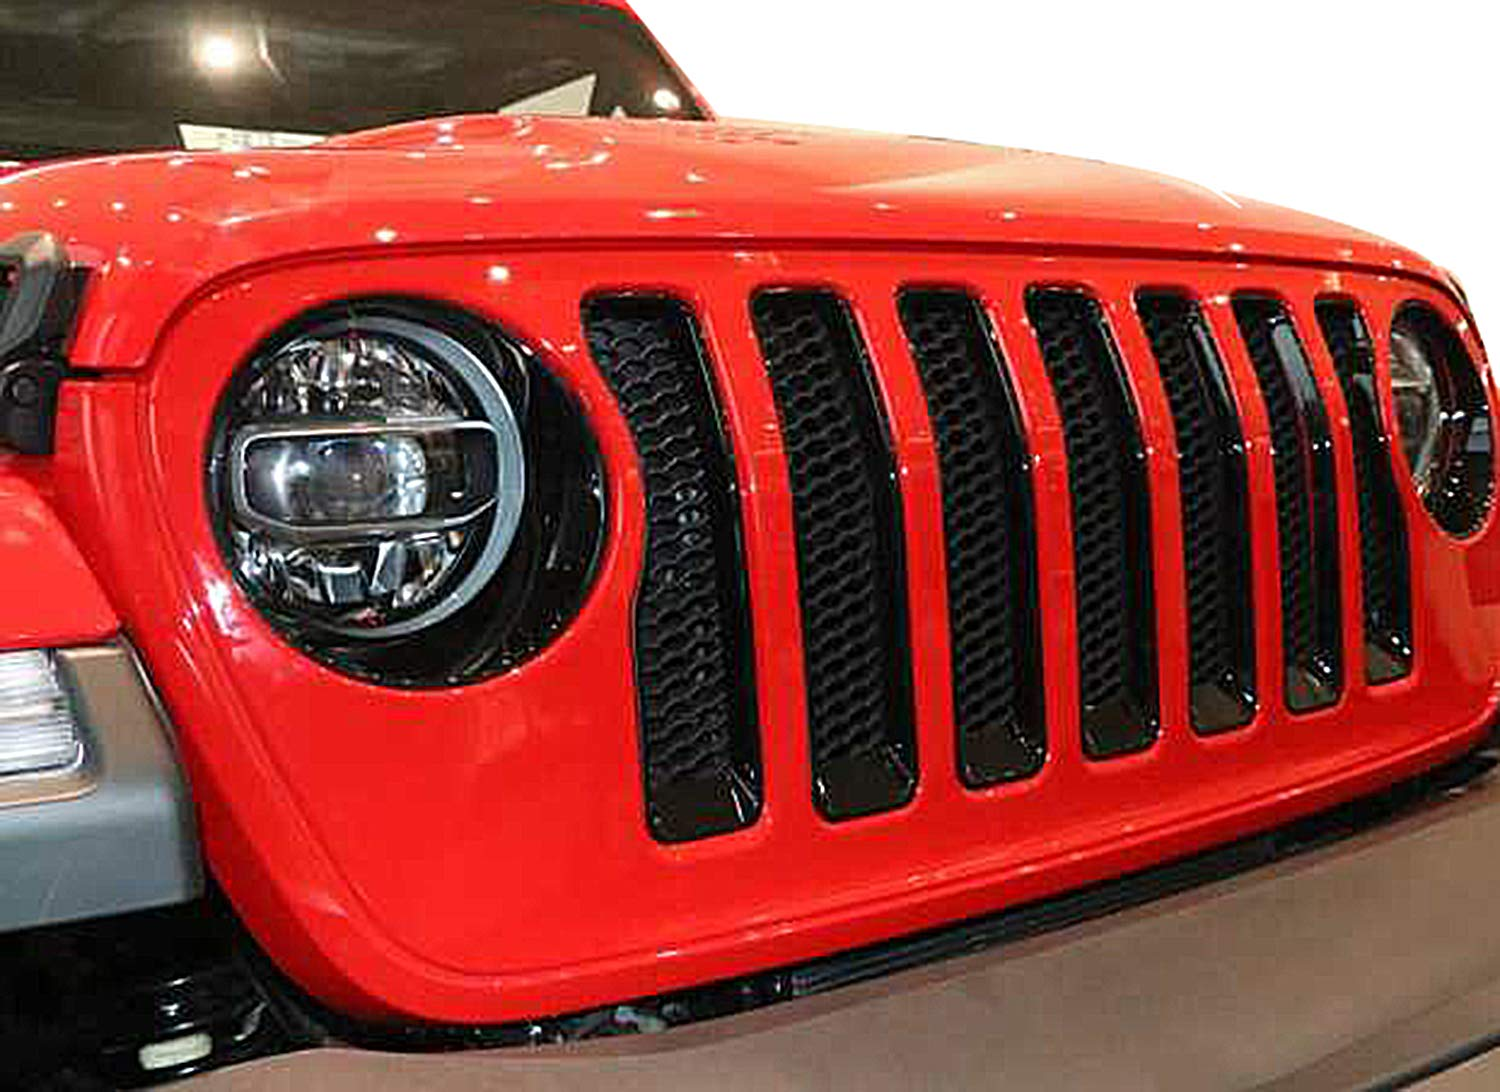 7PCS CT-JL Grille Inserts Red ,Free Get 1 Pair Jeep Headlights Cover for Wrangler JL cartaoo Front Grille Inserts Compatible with 2018 Jeep Wrangler JL-